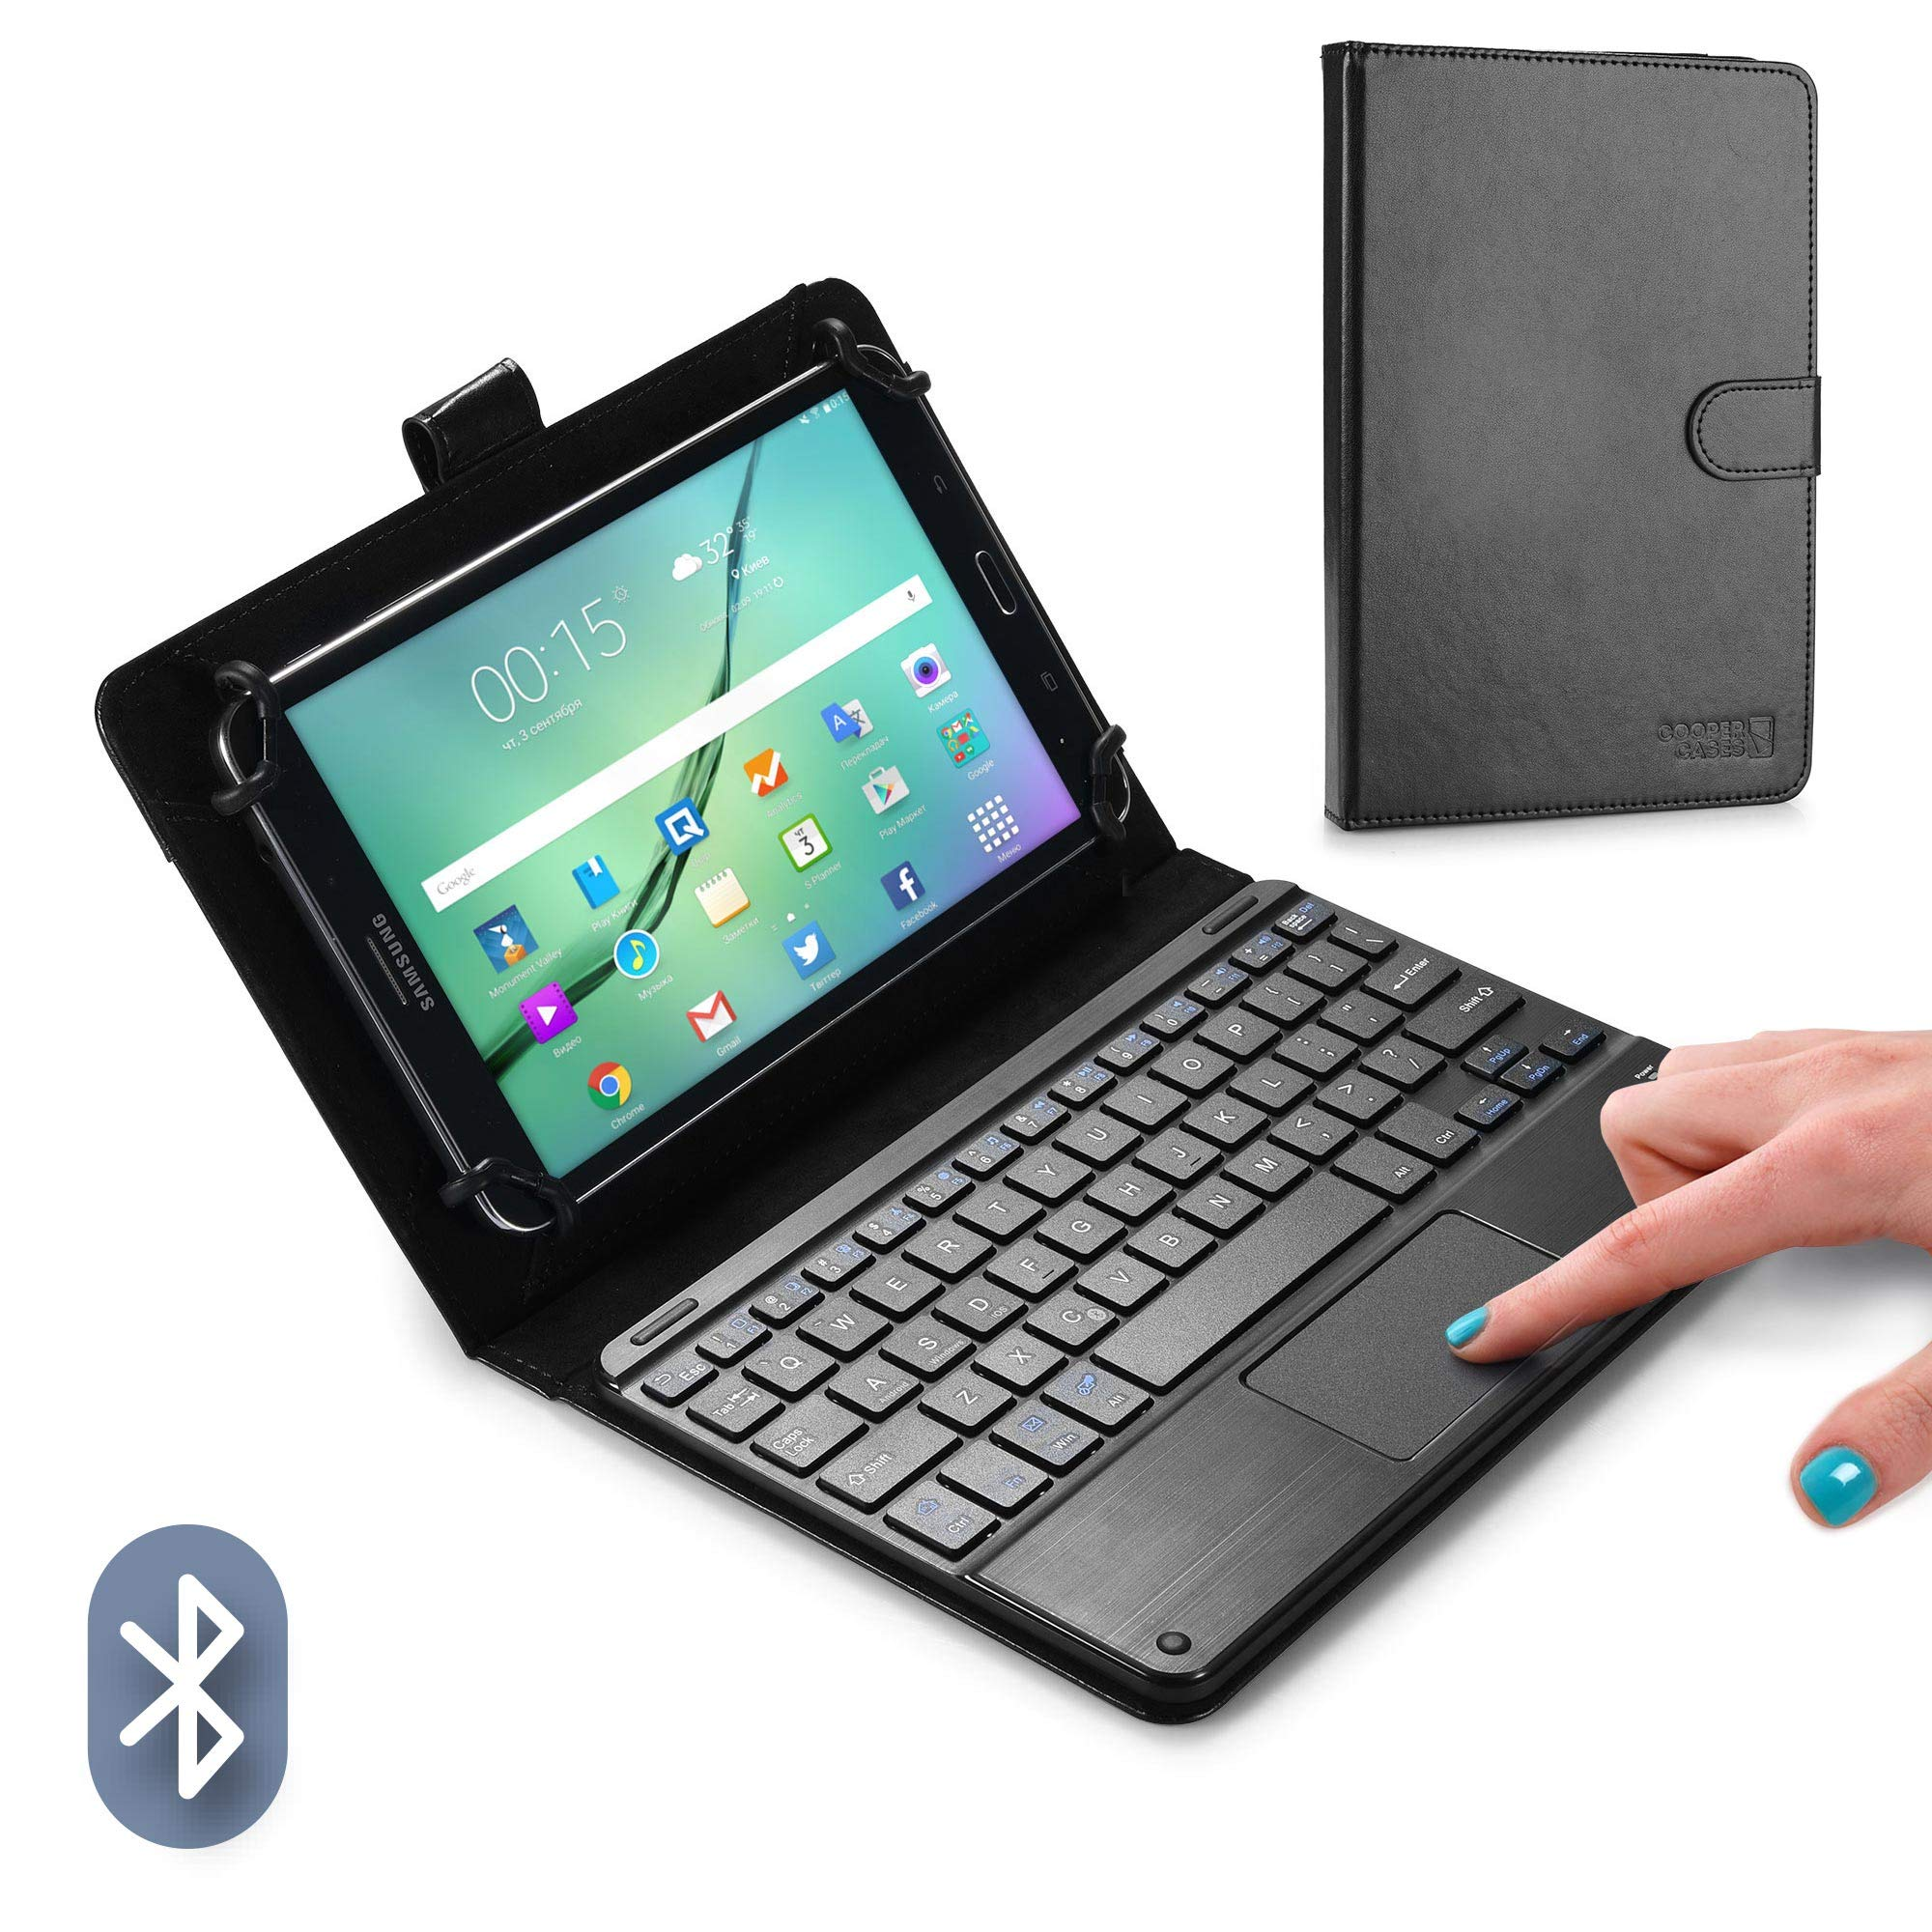 COOPER TOUCHPAD EXECUTIVE Keyboard case for 8'' - 8.9'' inch tablets   2-in-1 Bluetooth Wireless Keyboard with Touchpad & Leather Folio Cover   Touchpad Mouse, Stand, 100HR Battery, 14 Hotkeys (Black)